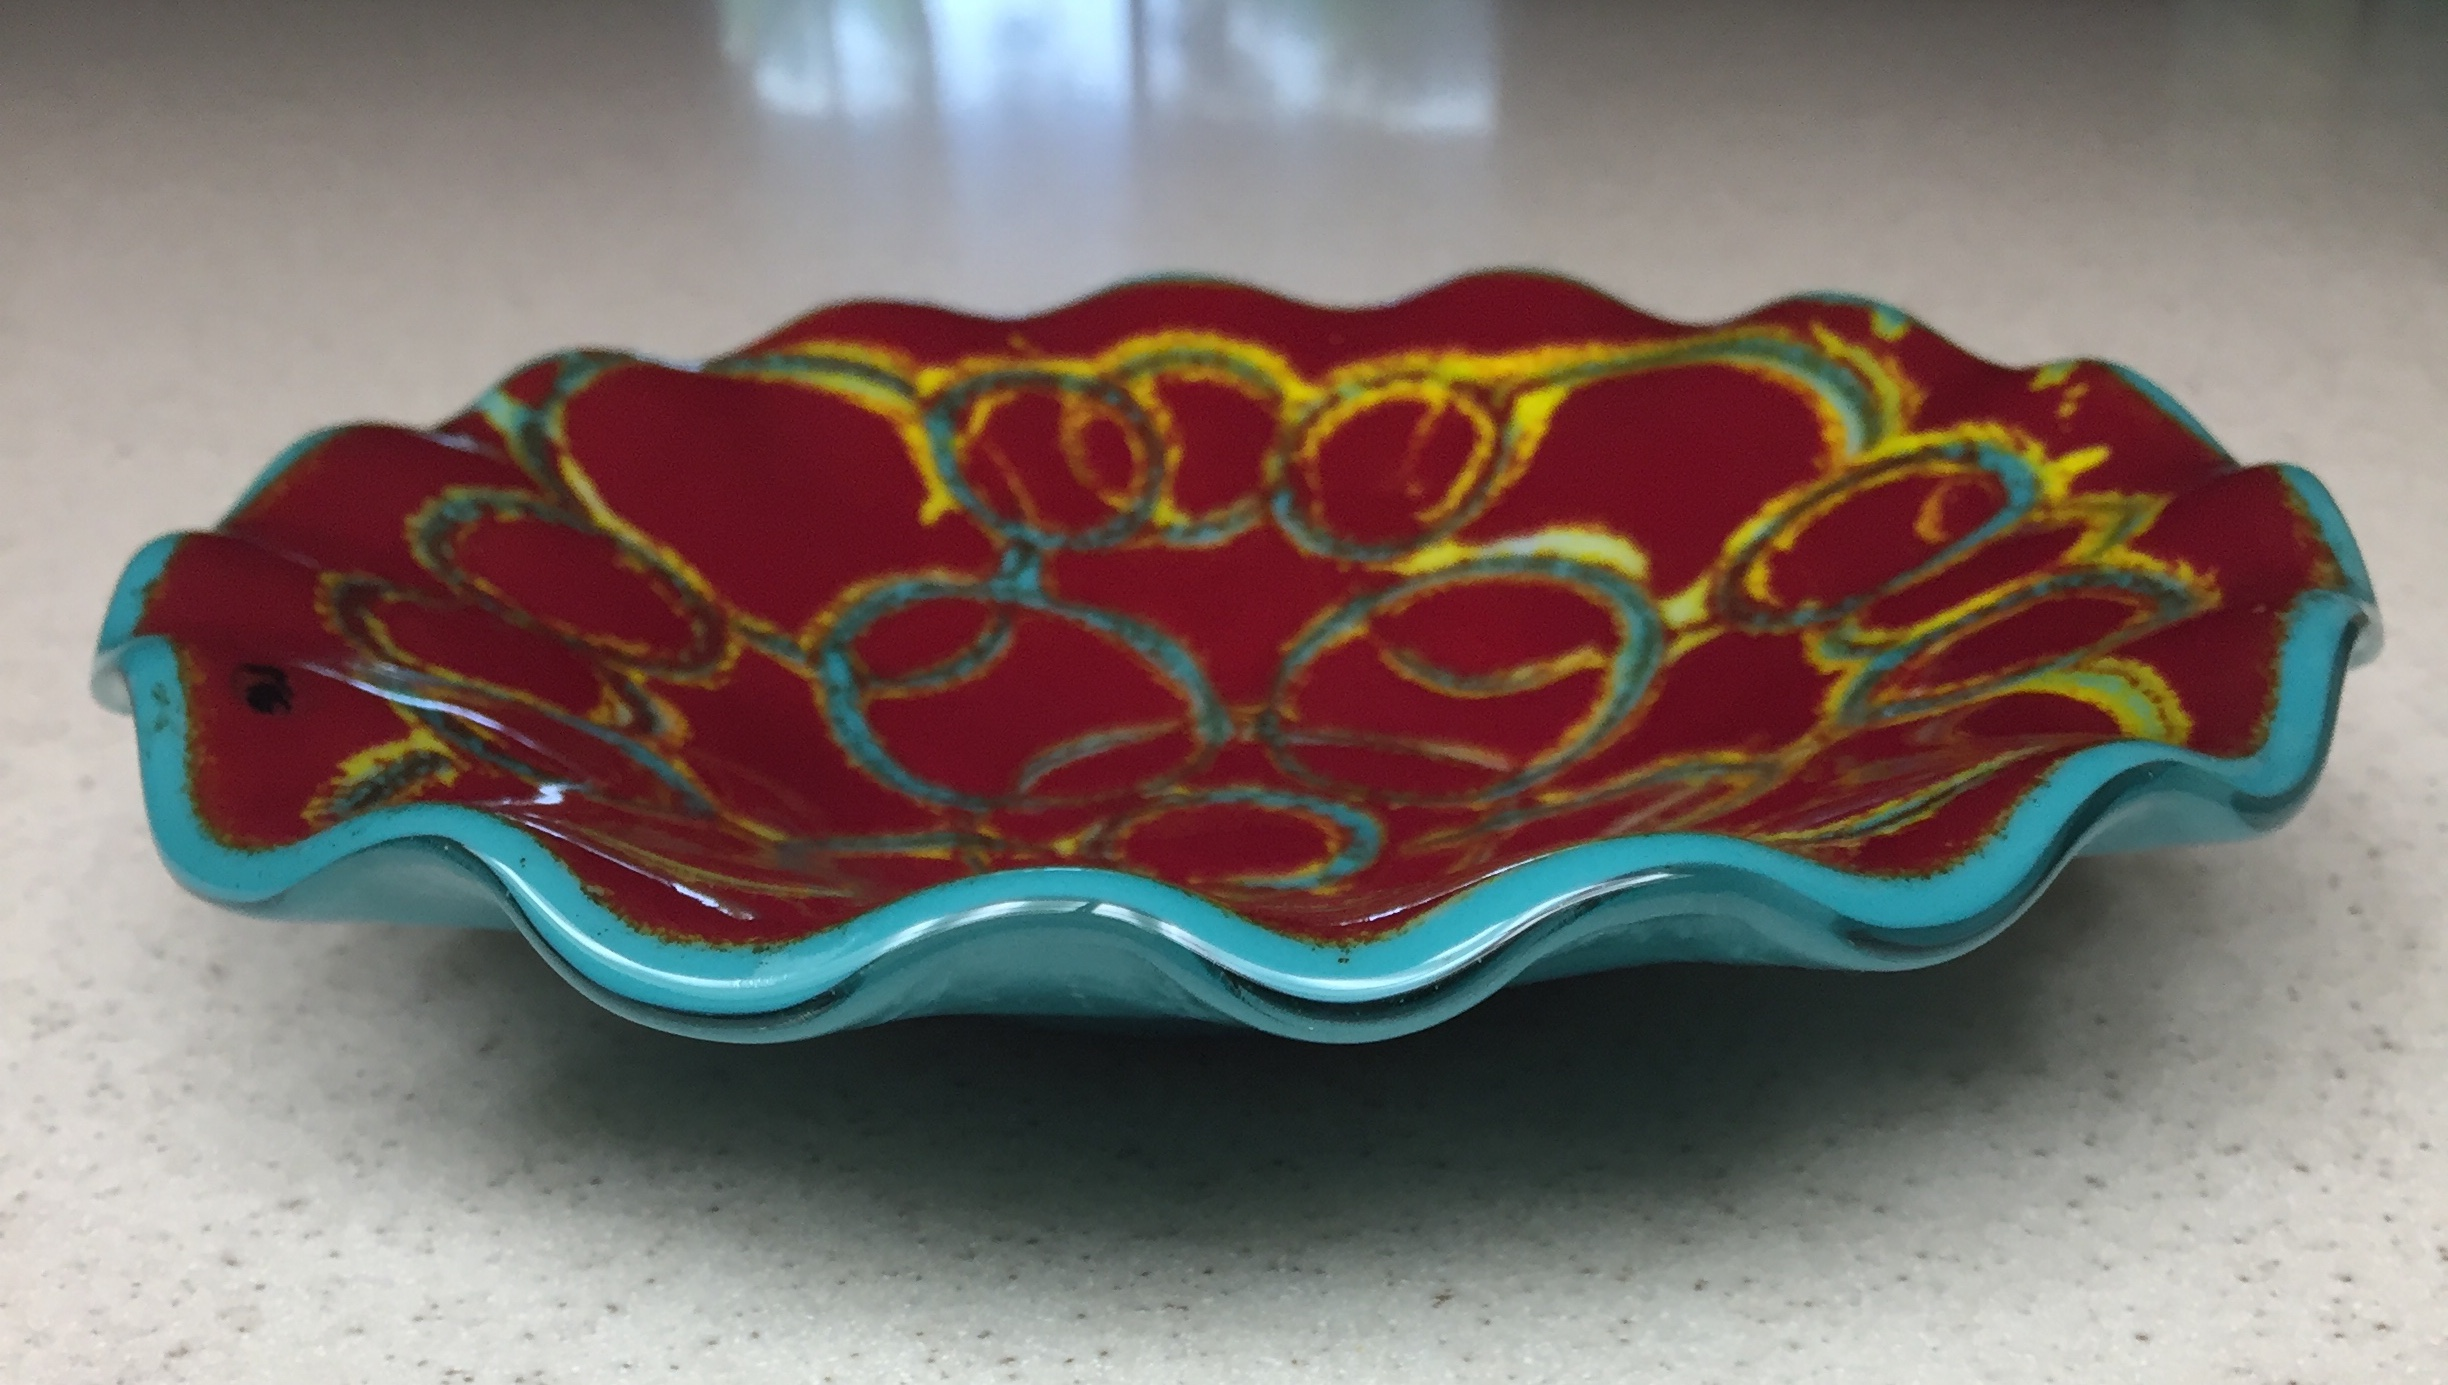 Glasswork by Mary